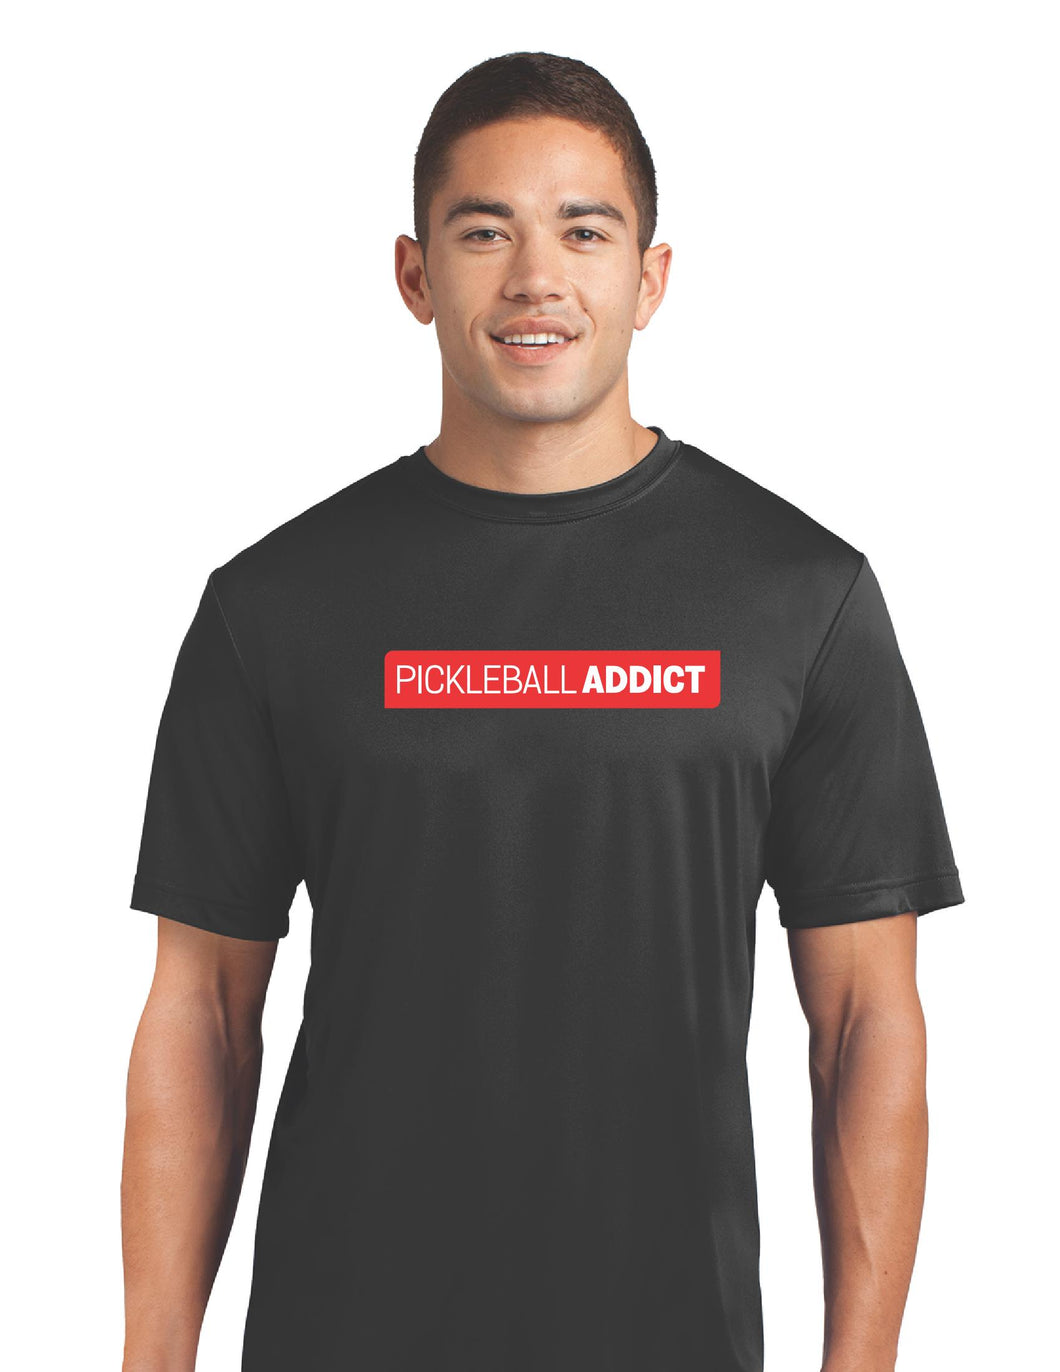 Pickleball Addict - Mens Performance Tee